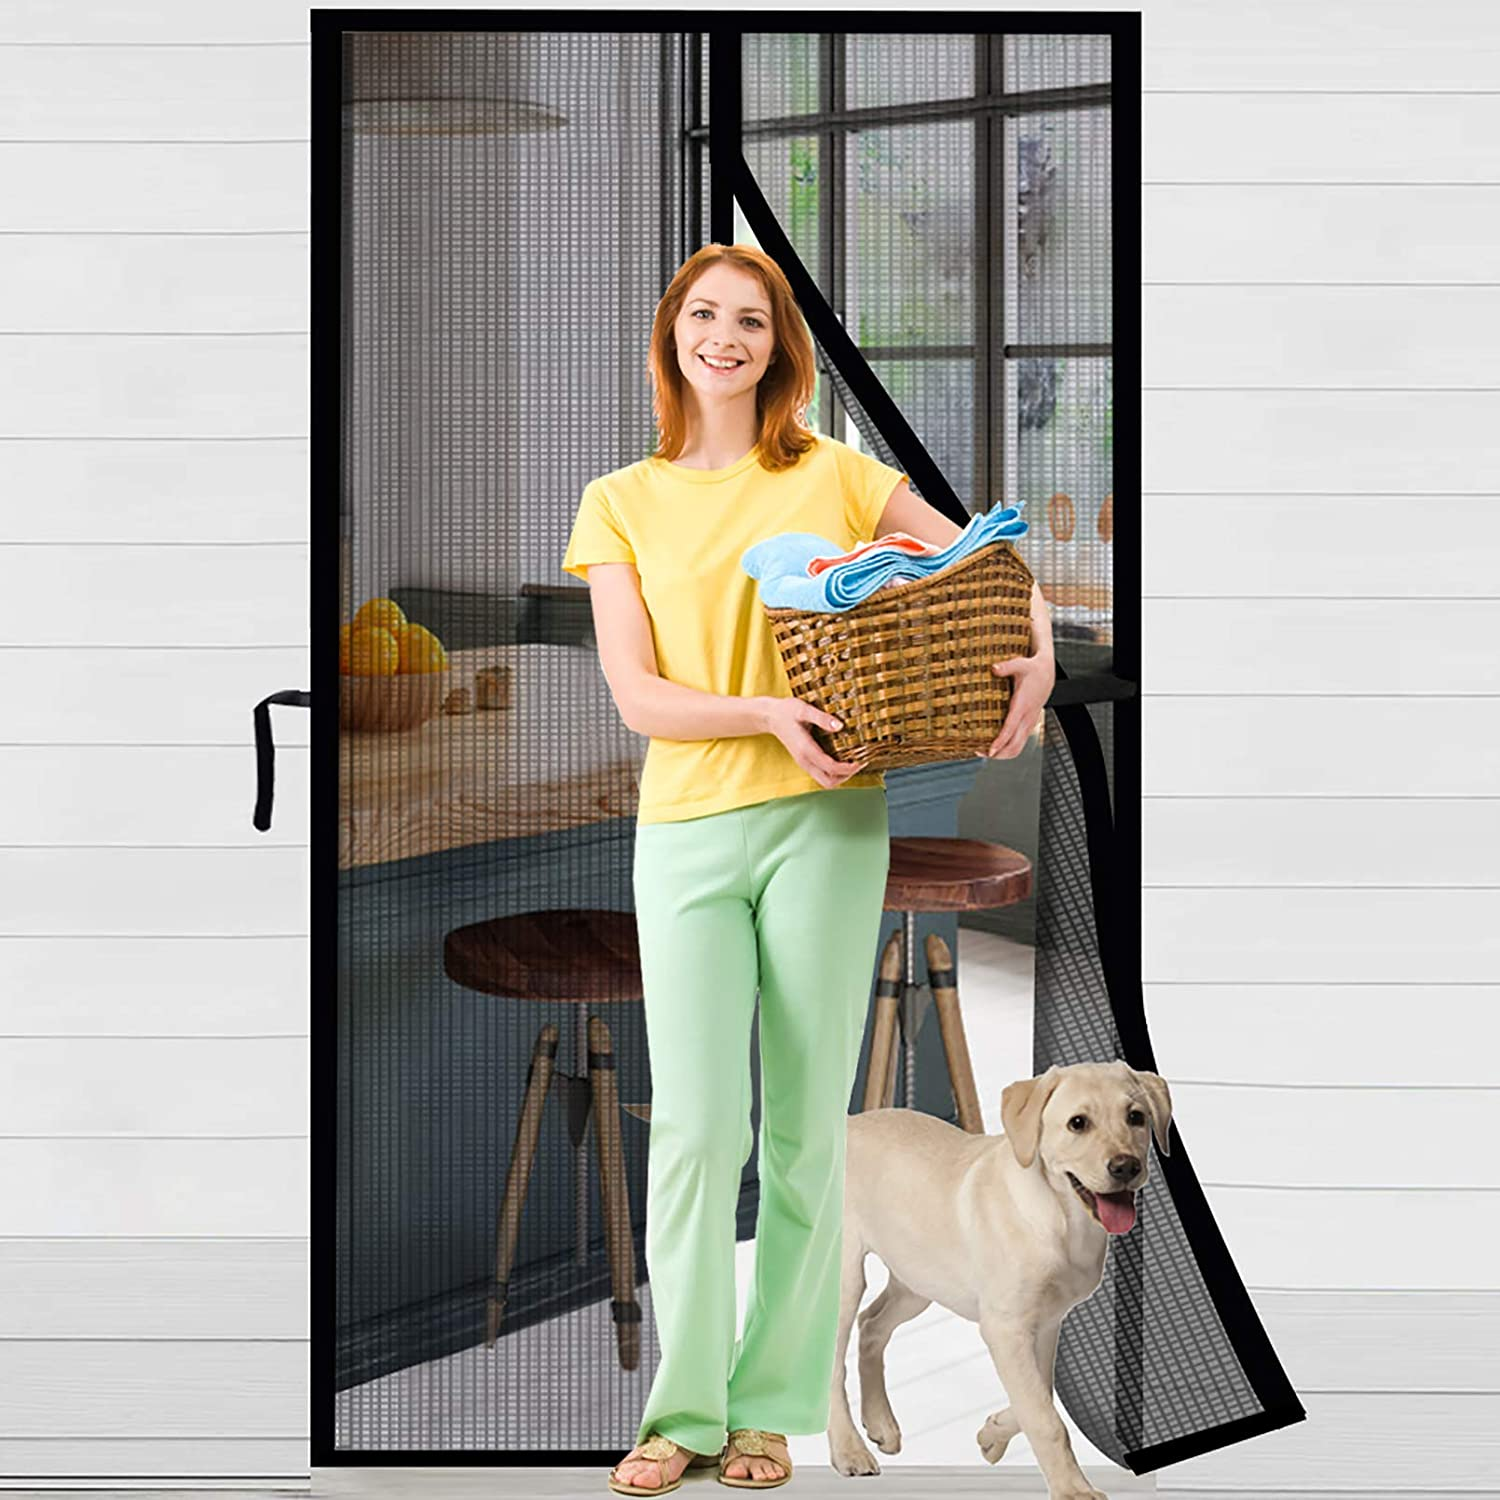 "ACMETOP Magnetic Screen Door, Upgraded Fiberglass Mesh Screen Door with Handy Hasps, Reinforced Door Screen with 36 Magnets & 6 Weighted Sticks, Full Frame Hook & Loop Fits Door Size Up to 36"" x 82"" - -"